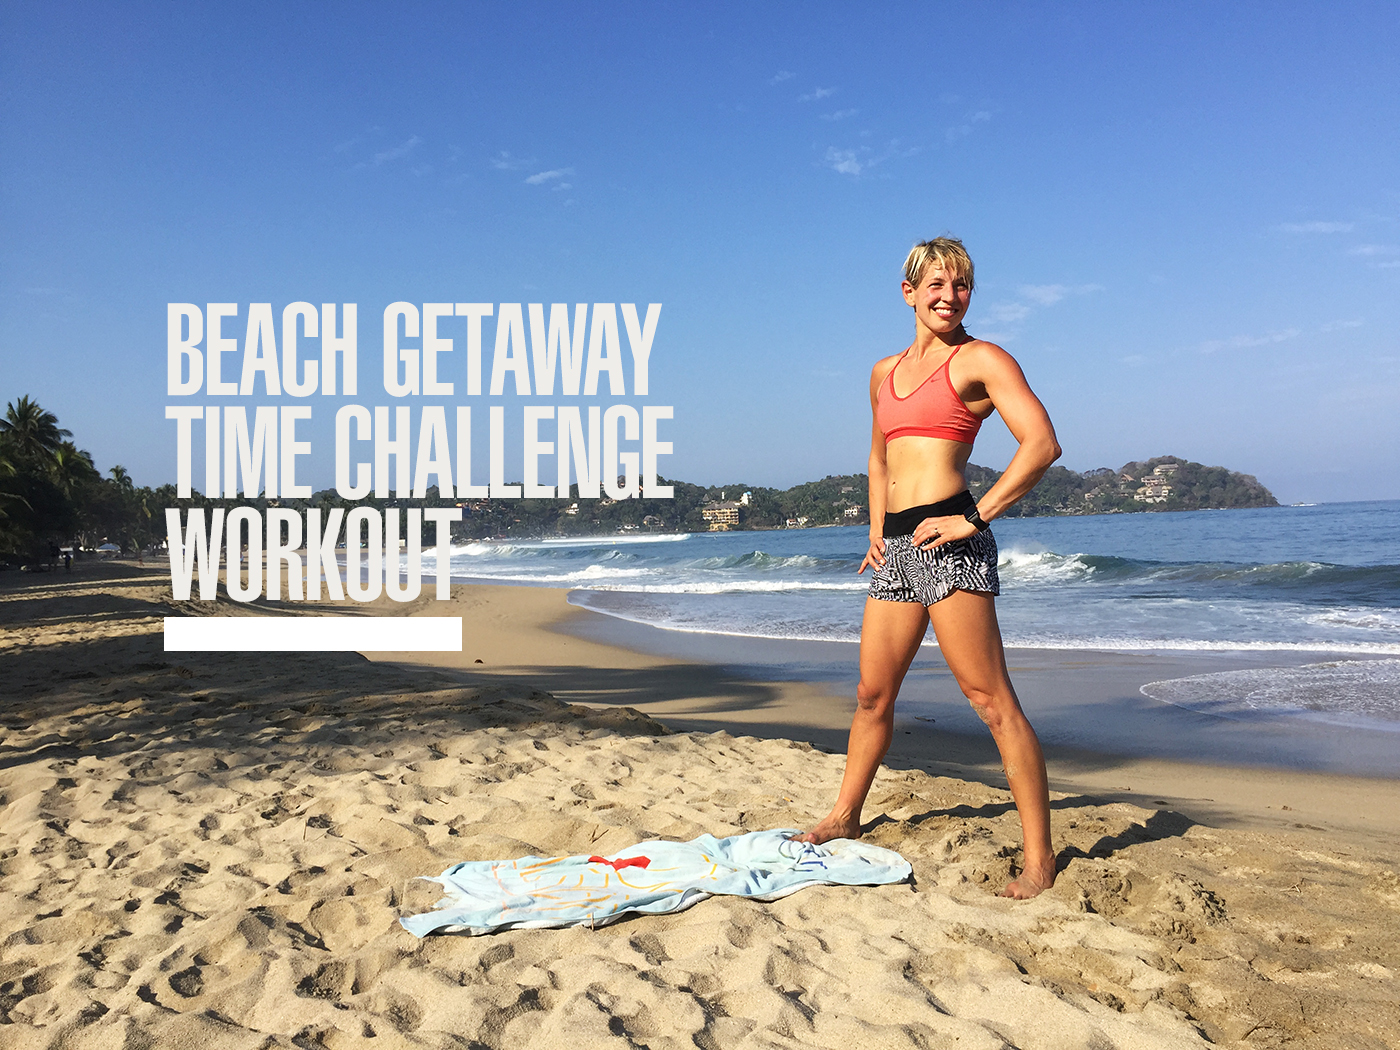 Beach Getaway Time Challenge Workout